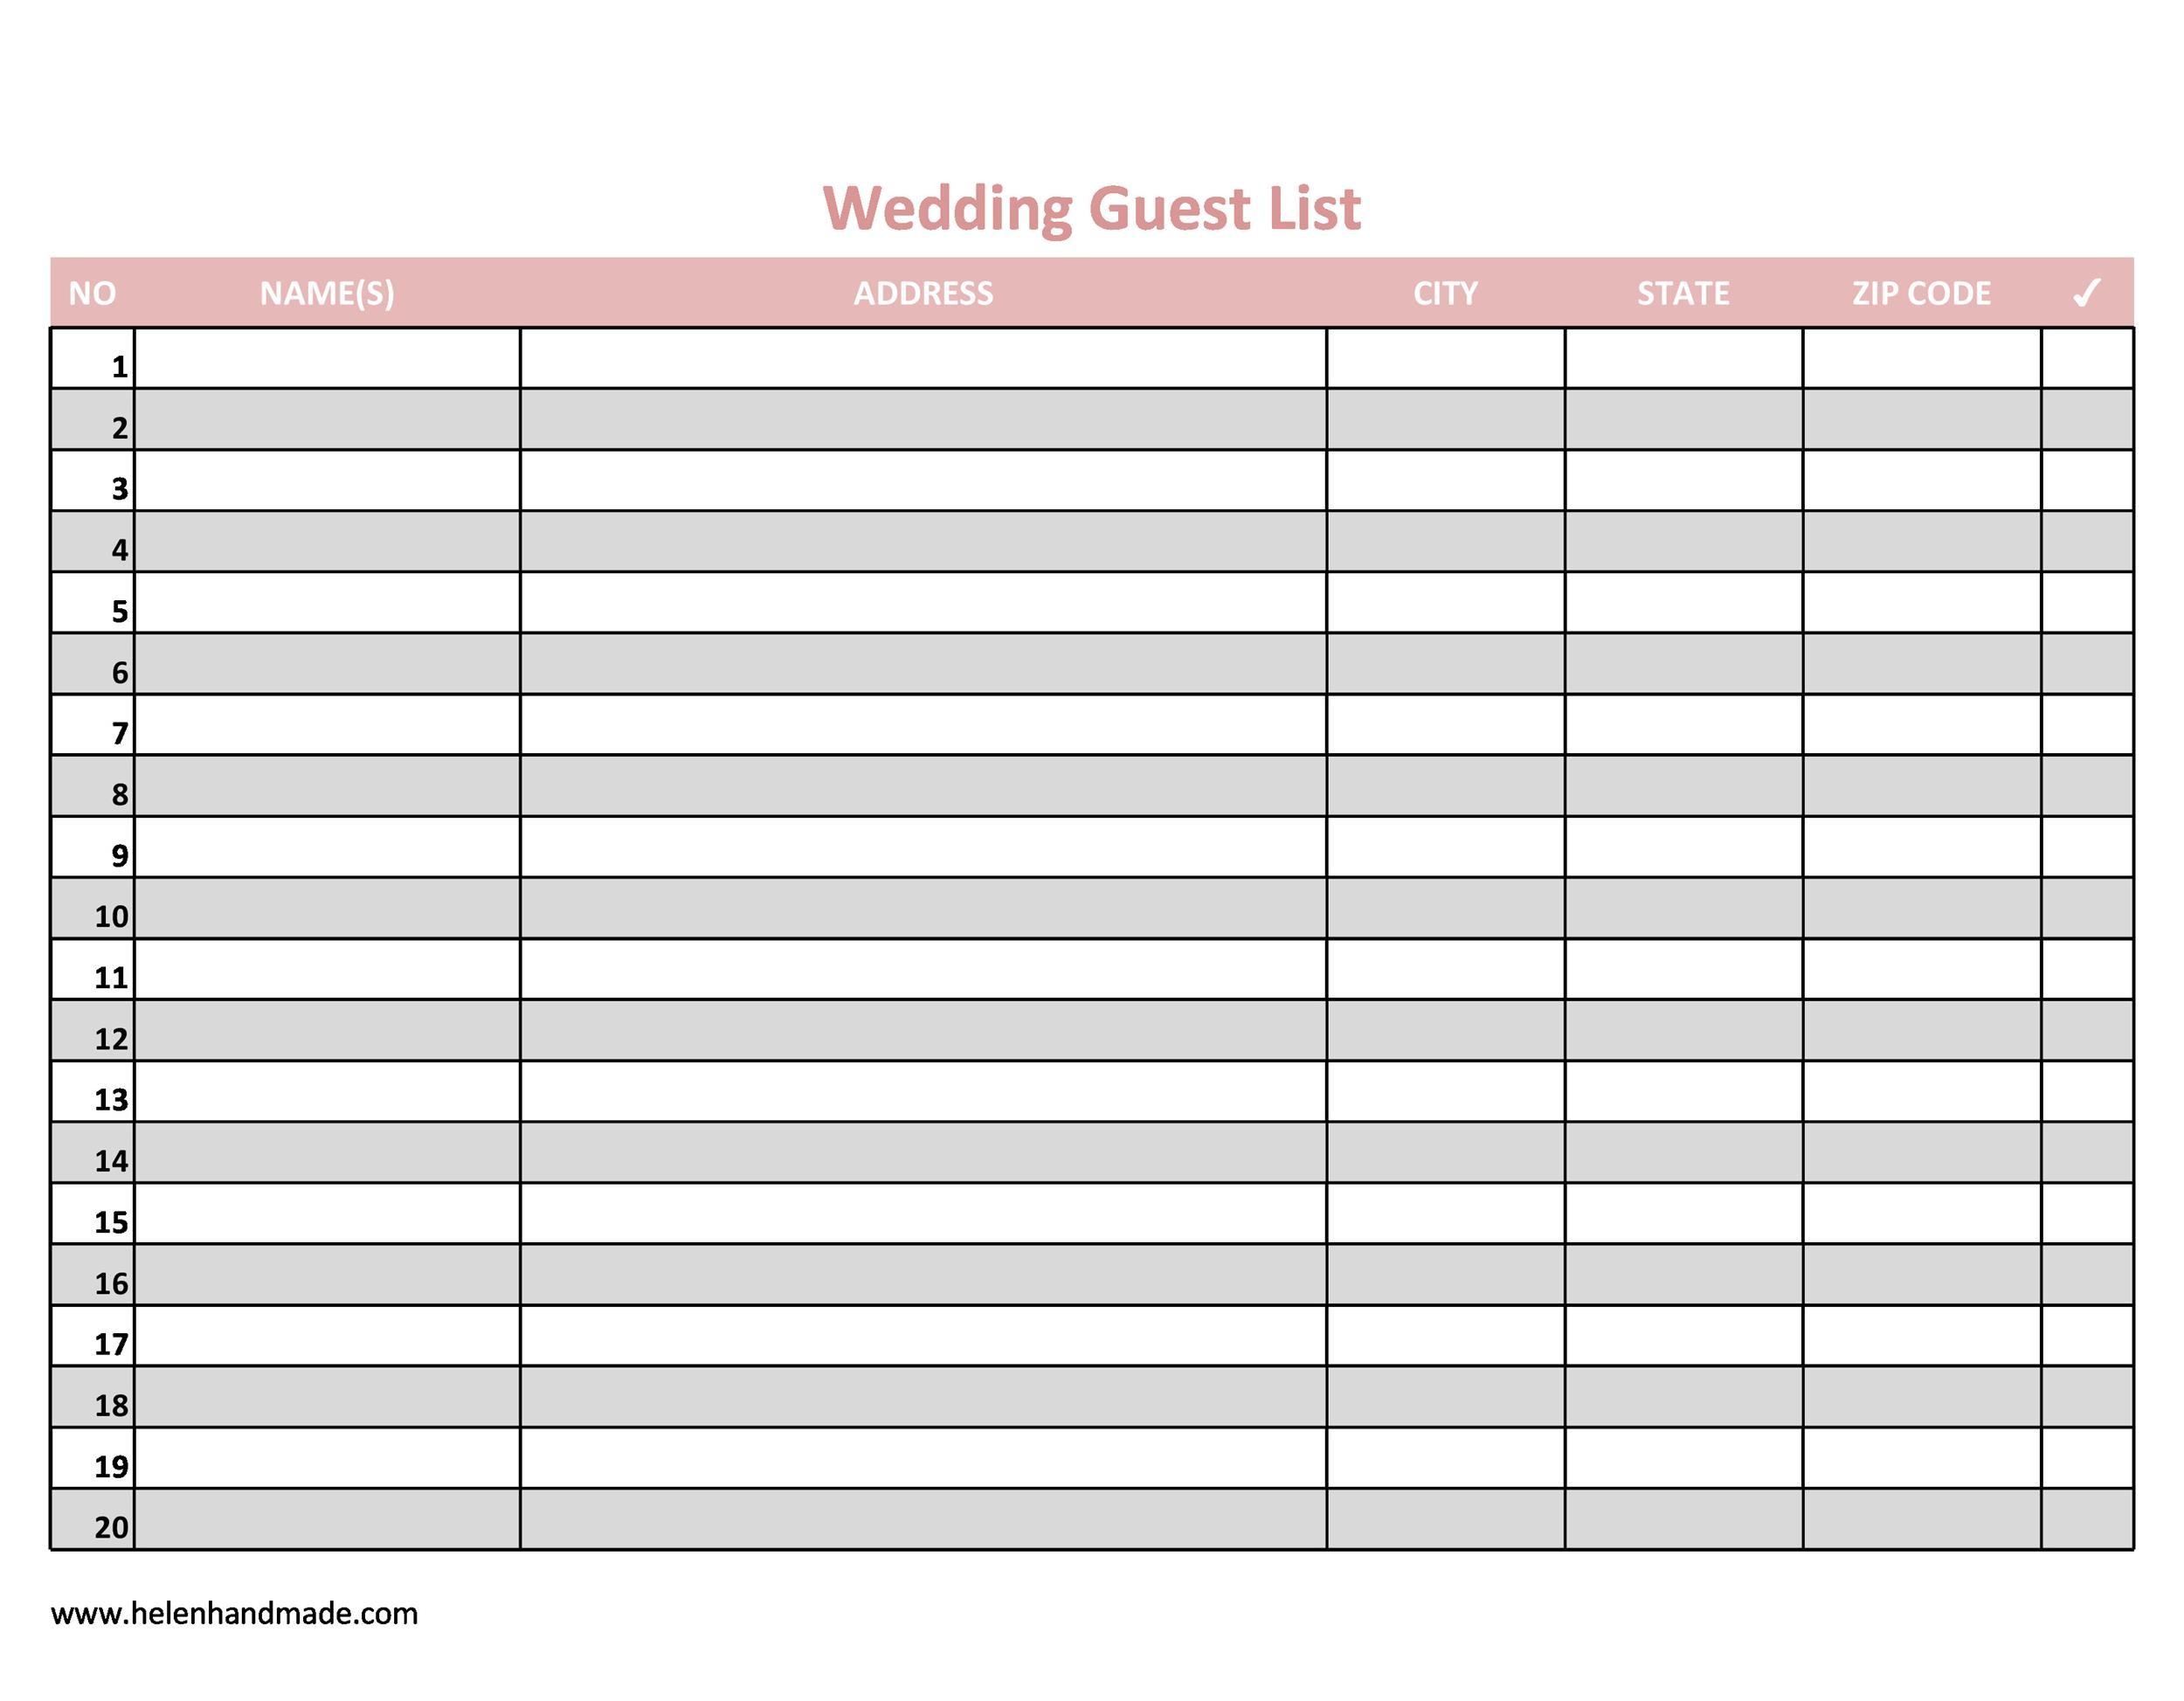 wedding guest list print out - Romeolandinez - sample wedding guest list